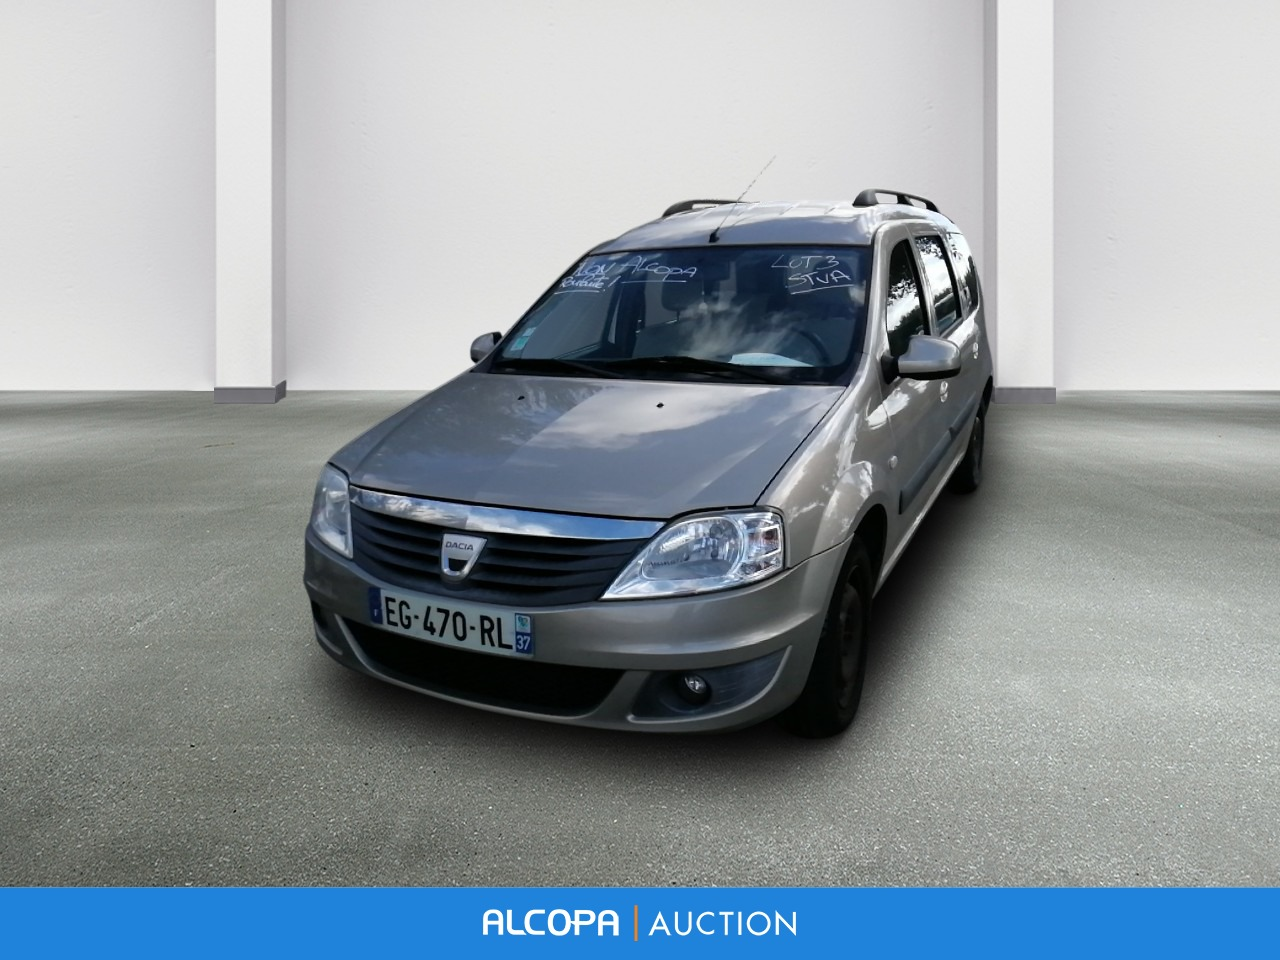 dacia logan mcv logan mcv 1 6 mpi 7 places prestige alcopa auction